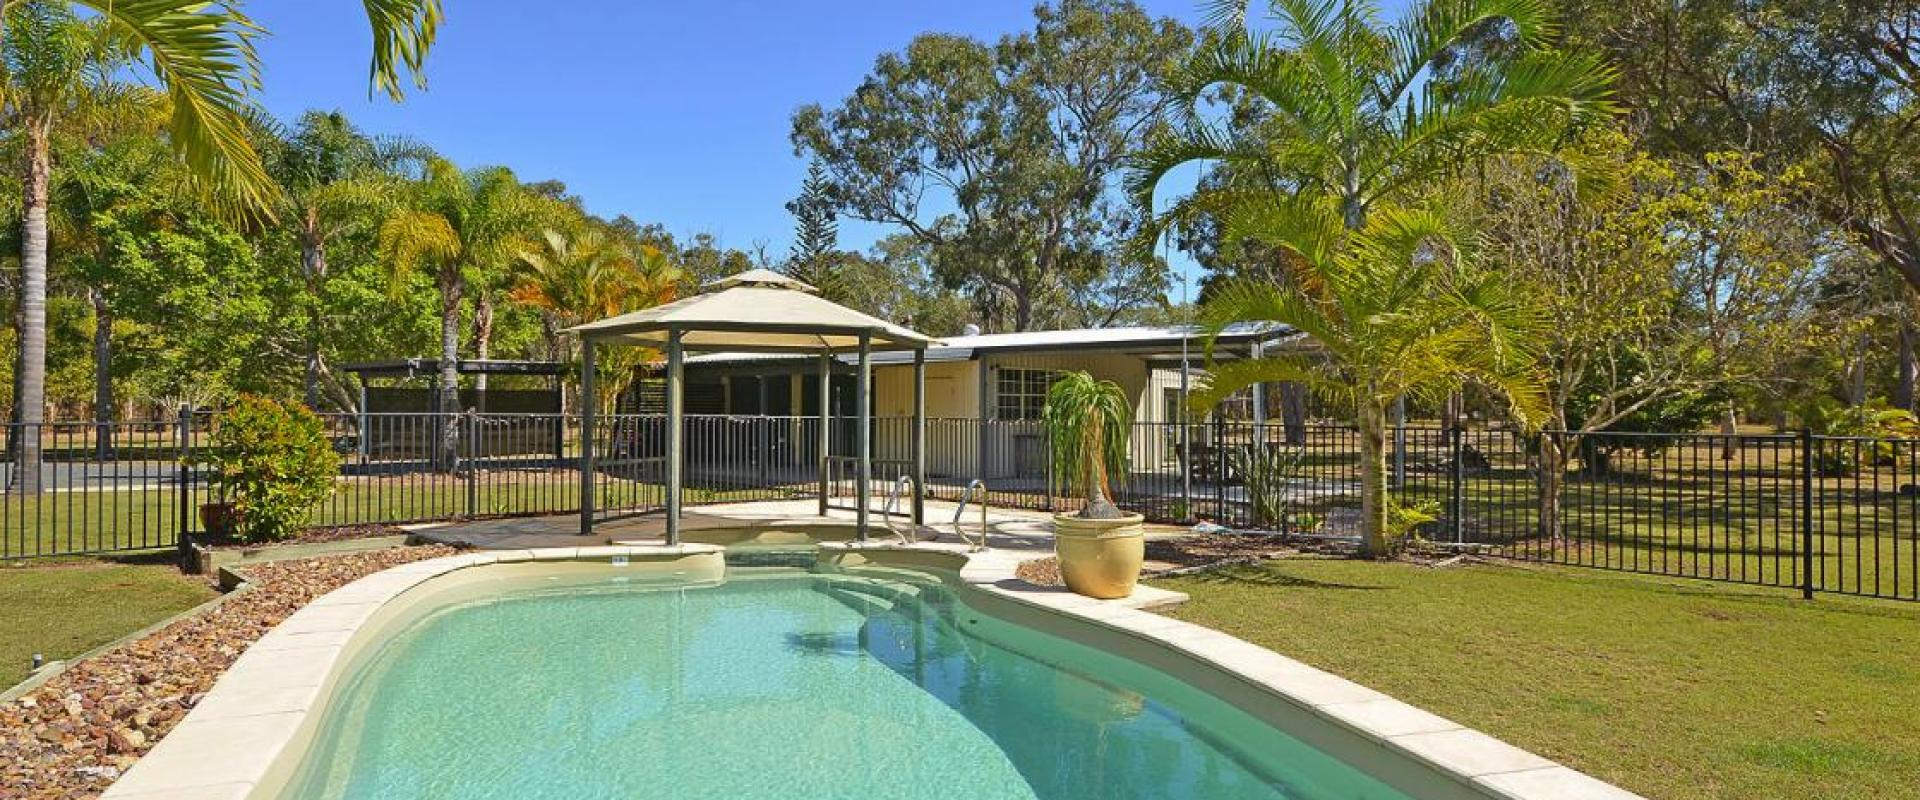 PRIVATE 5 ACRE RESORT CLOSE TO TOWN, GUEST ACCOMMODATION, 4 CARAVAN SITES, POWER, WATER, POTENTIAL RESORT STYLE BUSINESS S.T.C.A. SWIM POOL, JACUZZI.